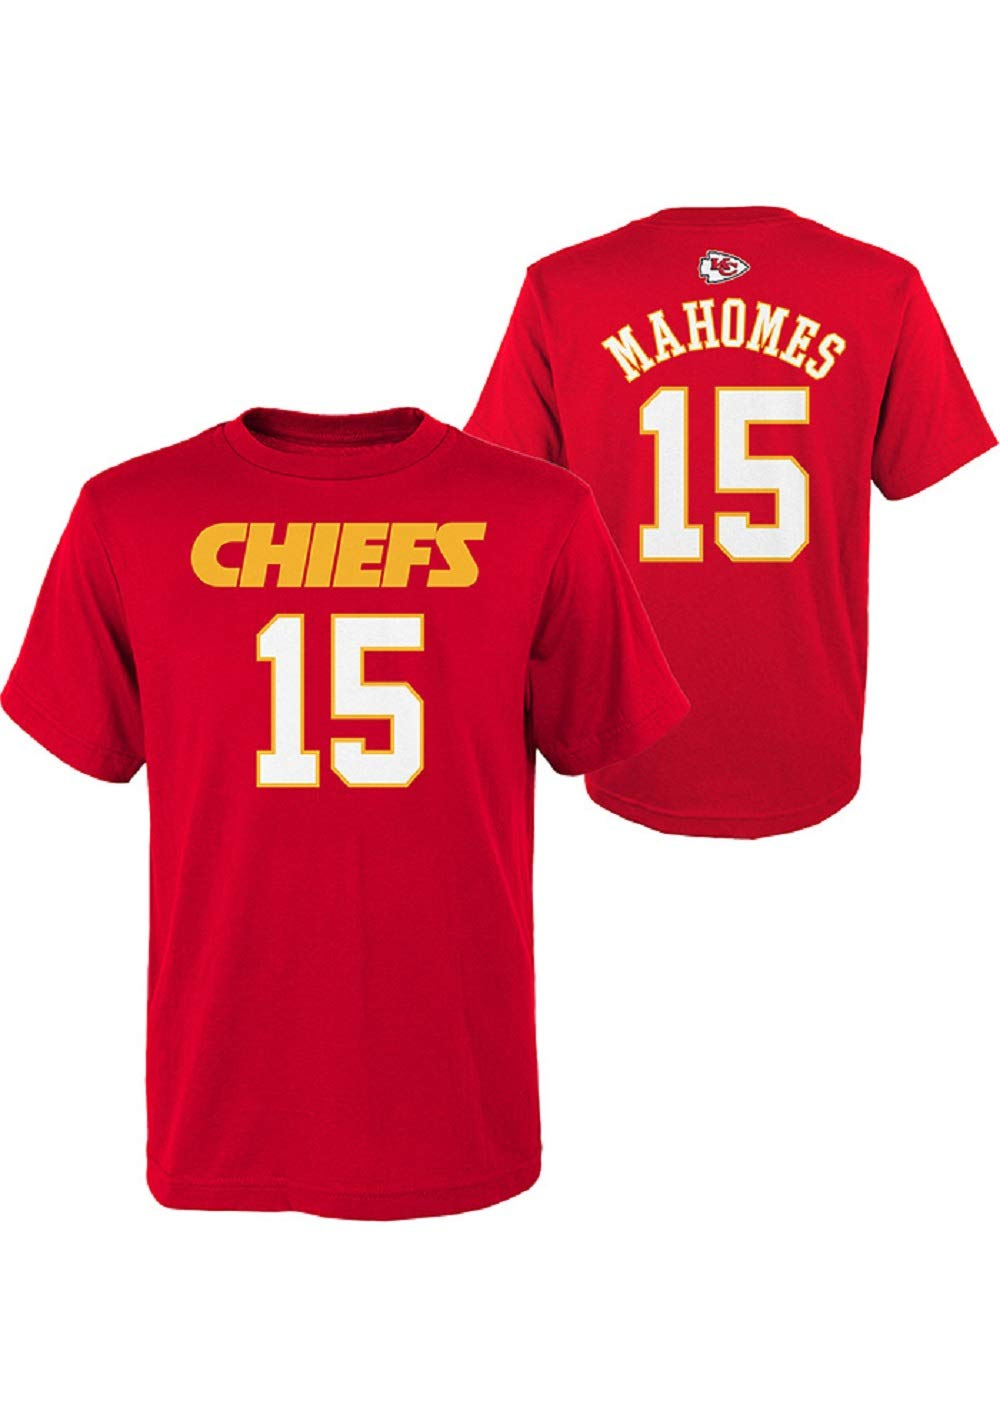 54eb1ed7a90 ... Mainliner Official Player Name & Number T-Shirt. Outerstuff-Patrick- Mahomes-Kansas-City-Chiefs-NFL-Youth-